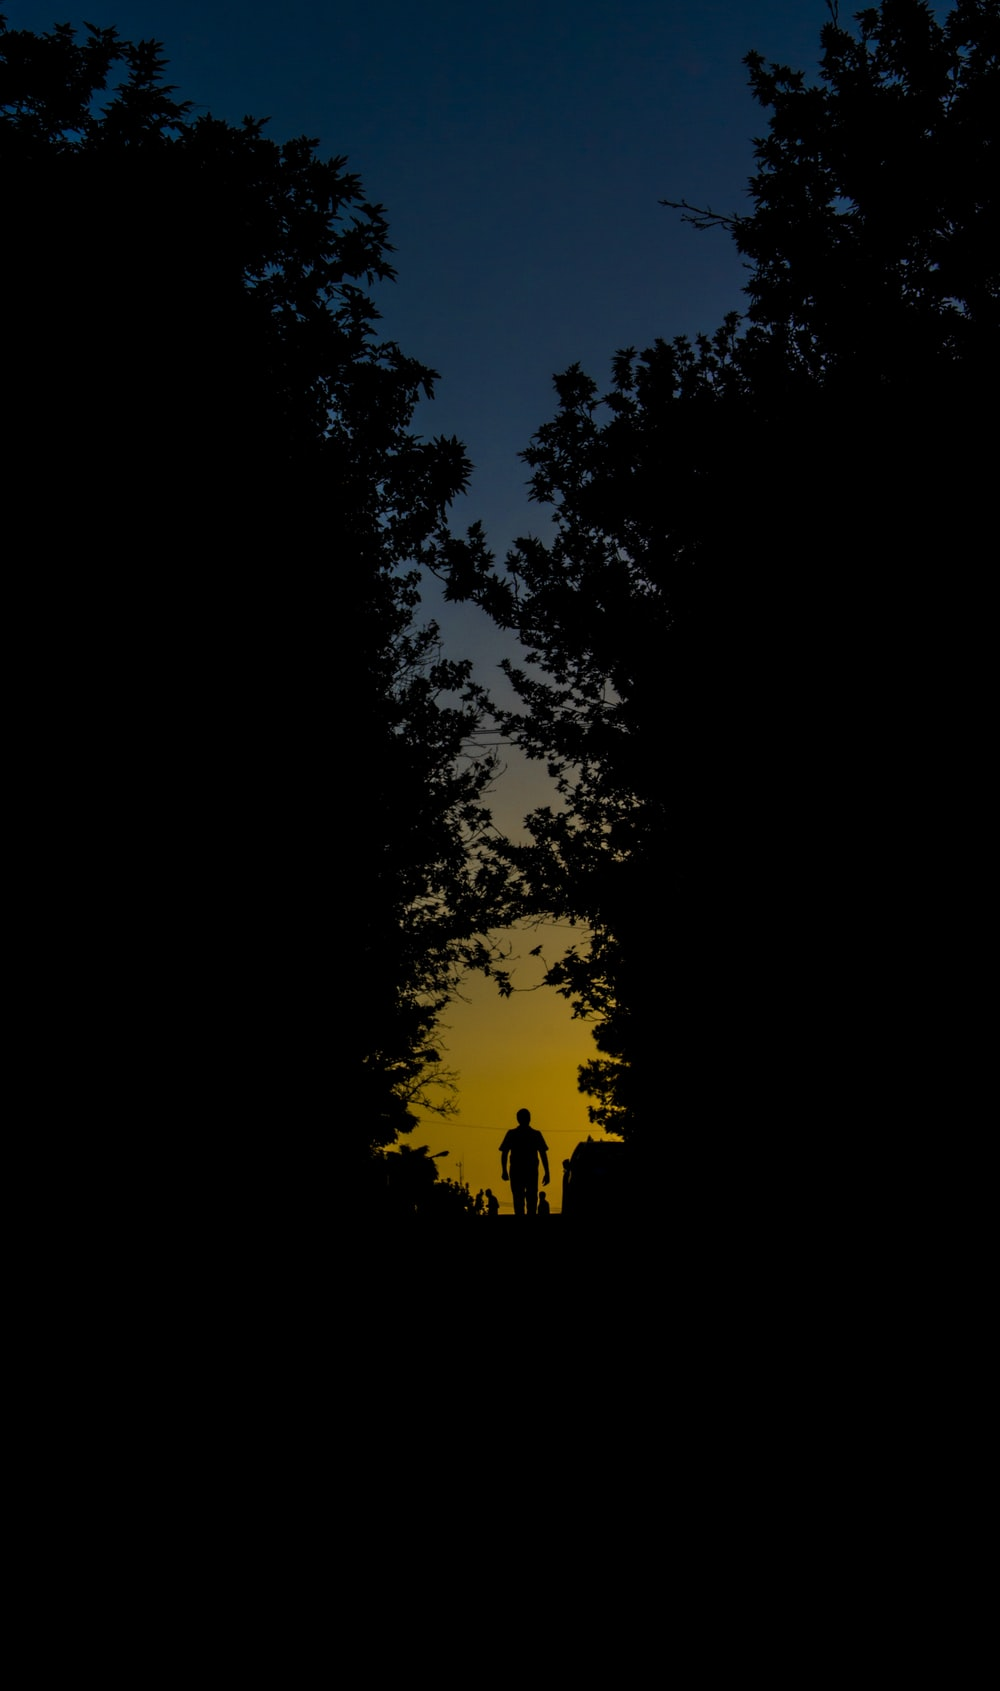 silhouette of person walking on forest